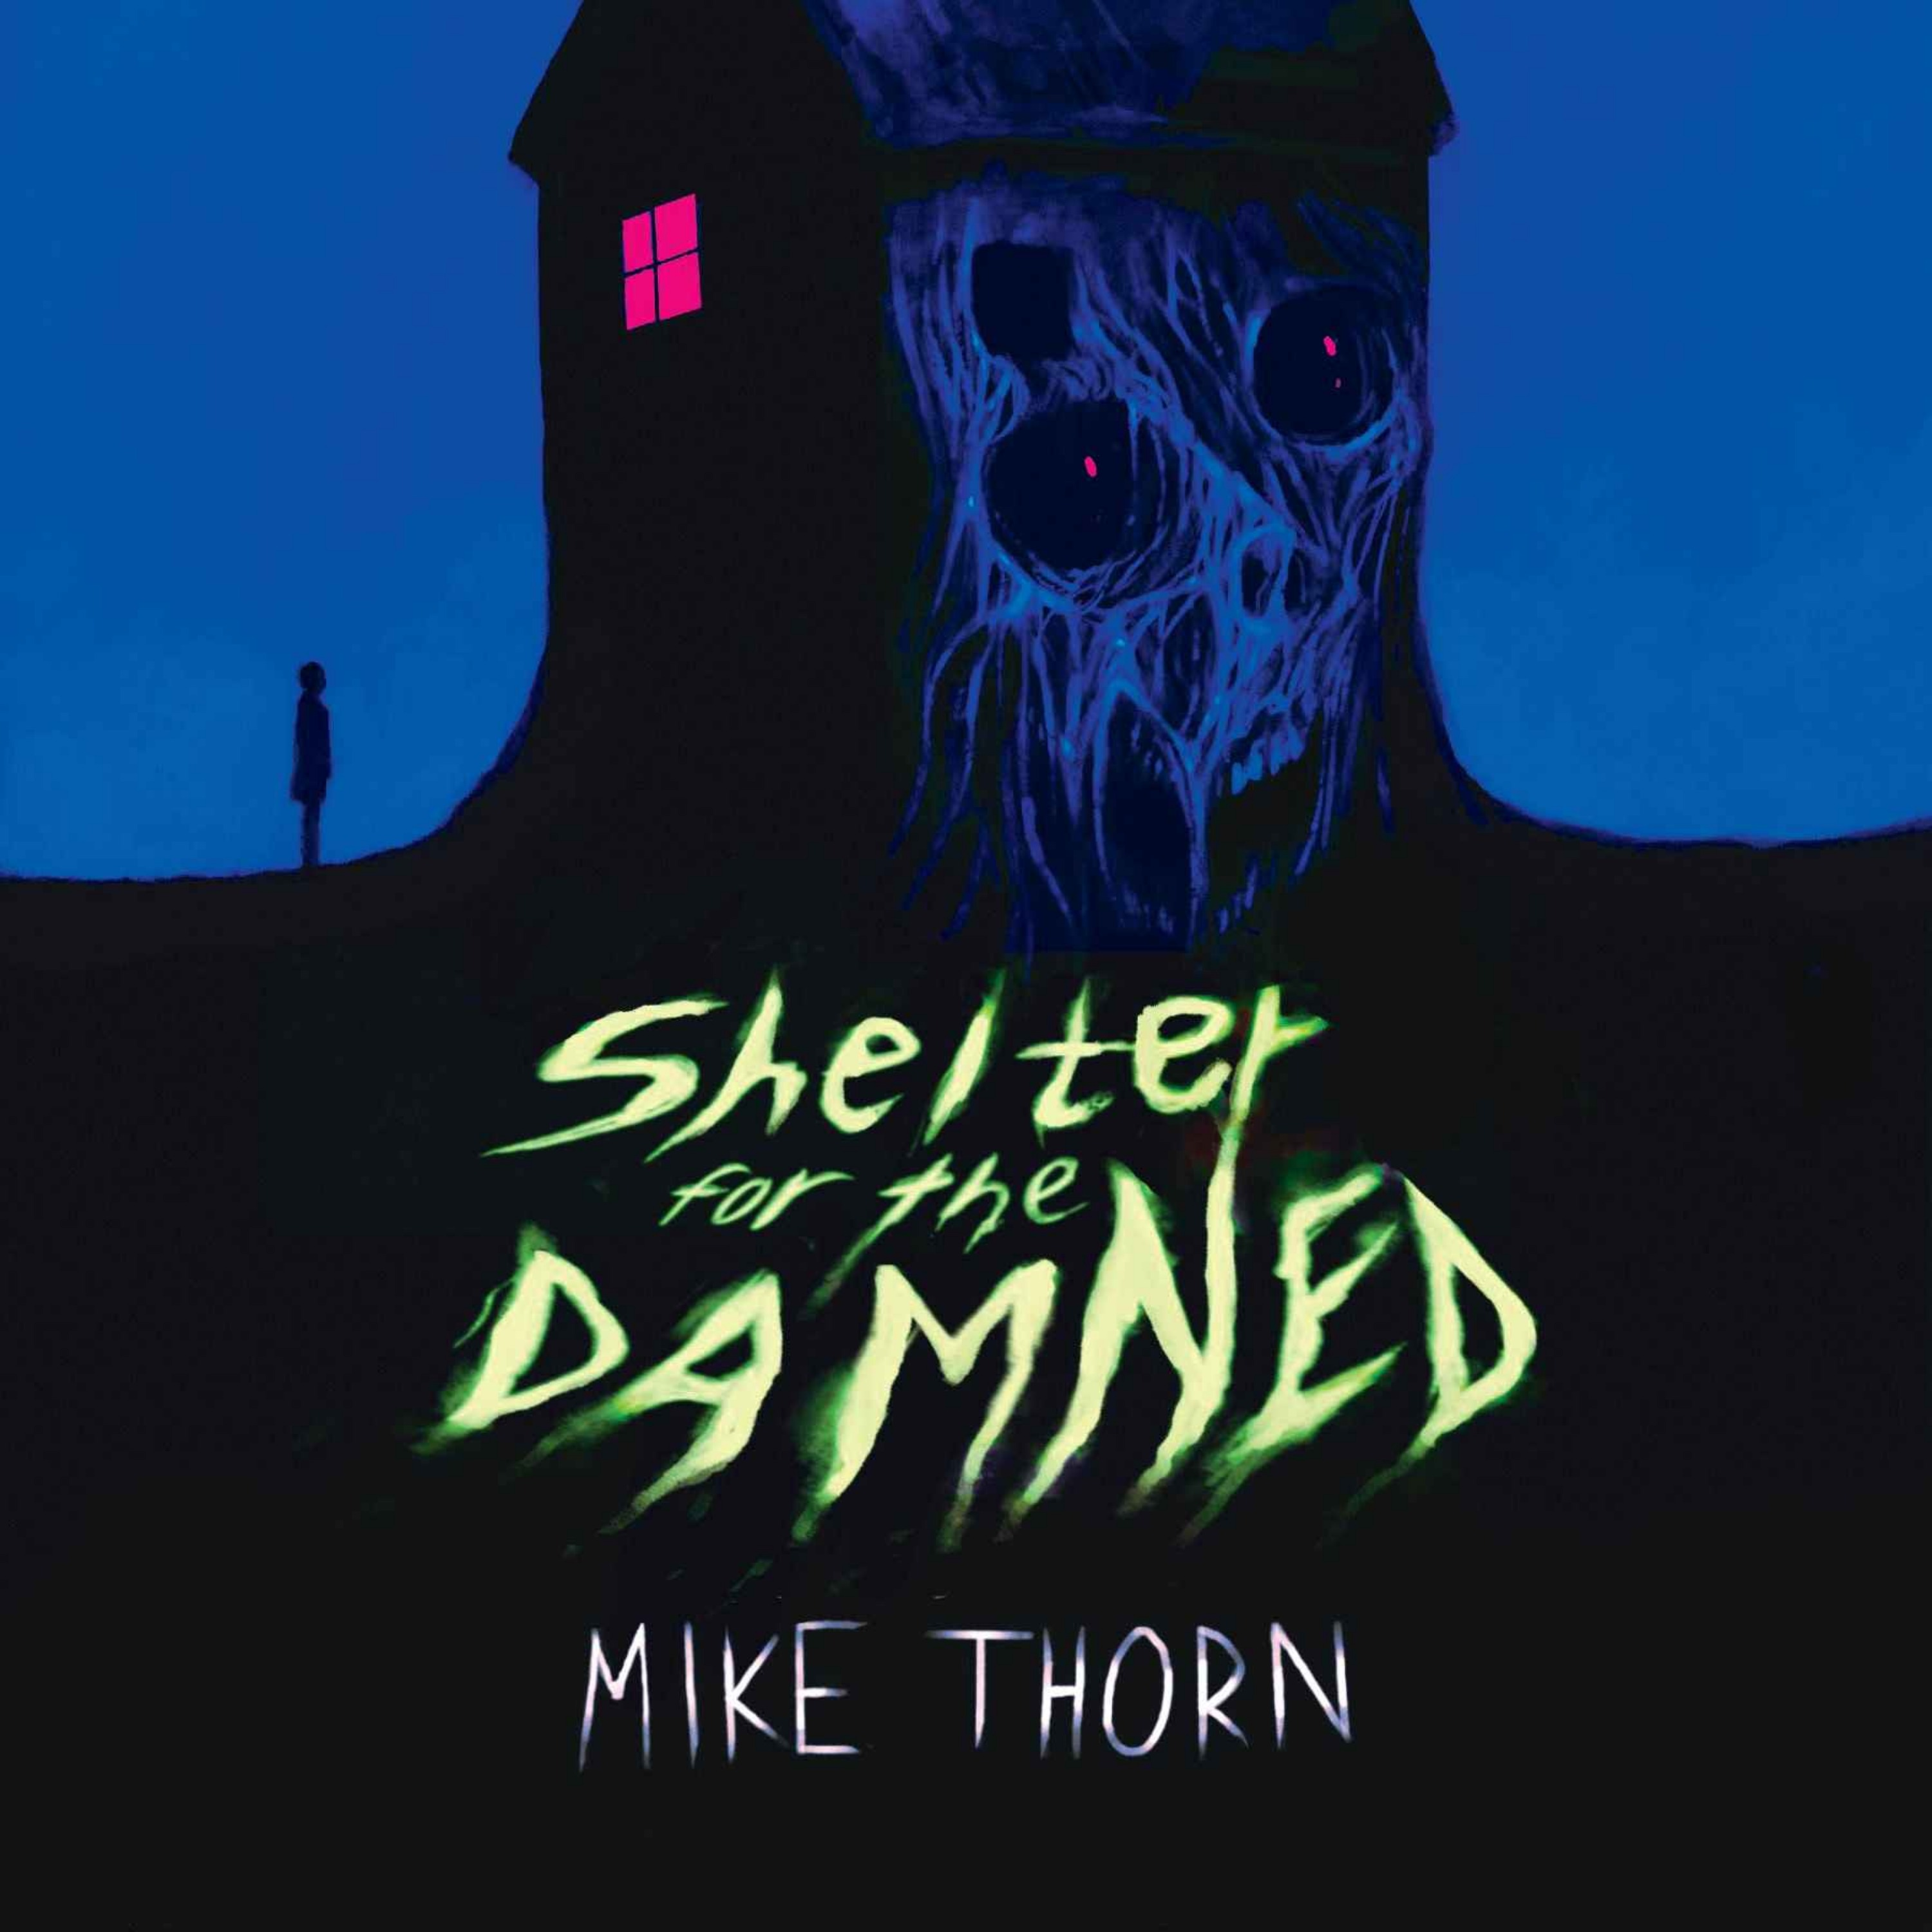 Mike Thorn - Shelter for the Damned